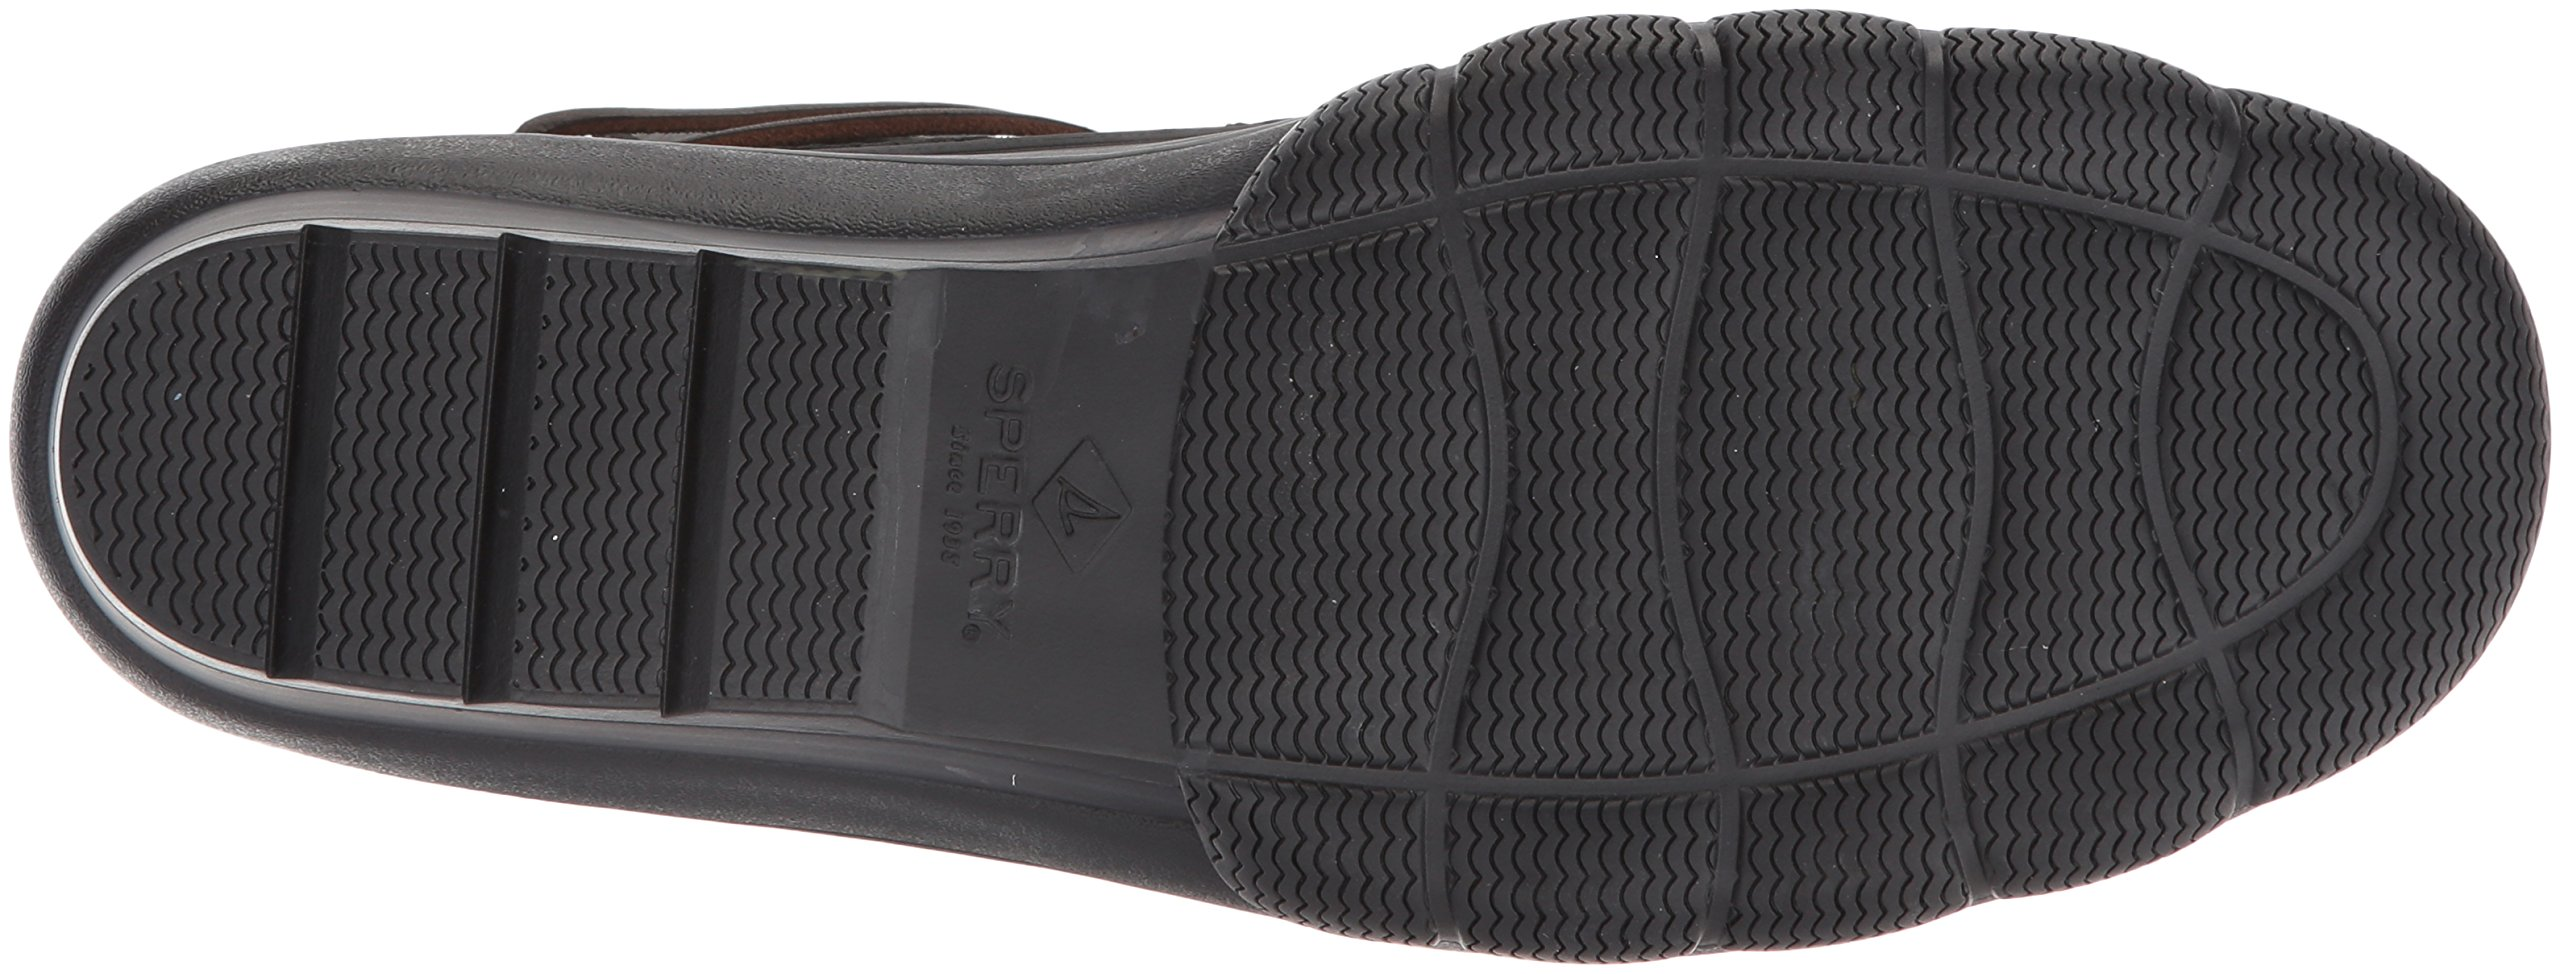 f8753e62ab6b Sperry Women s Saltwater Wedge Tide Rain Boot